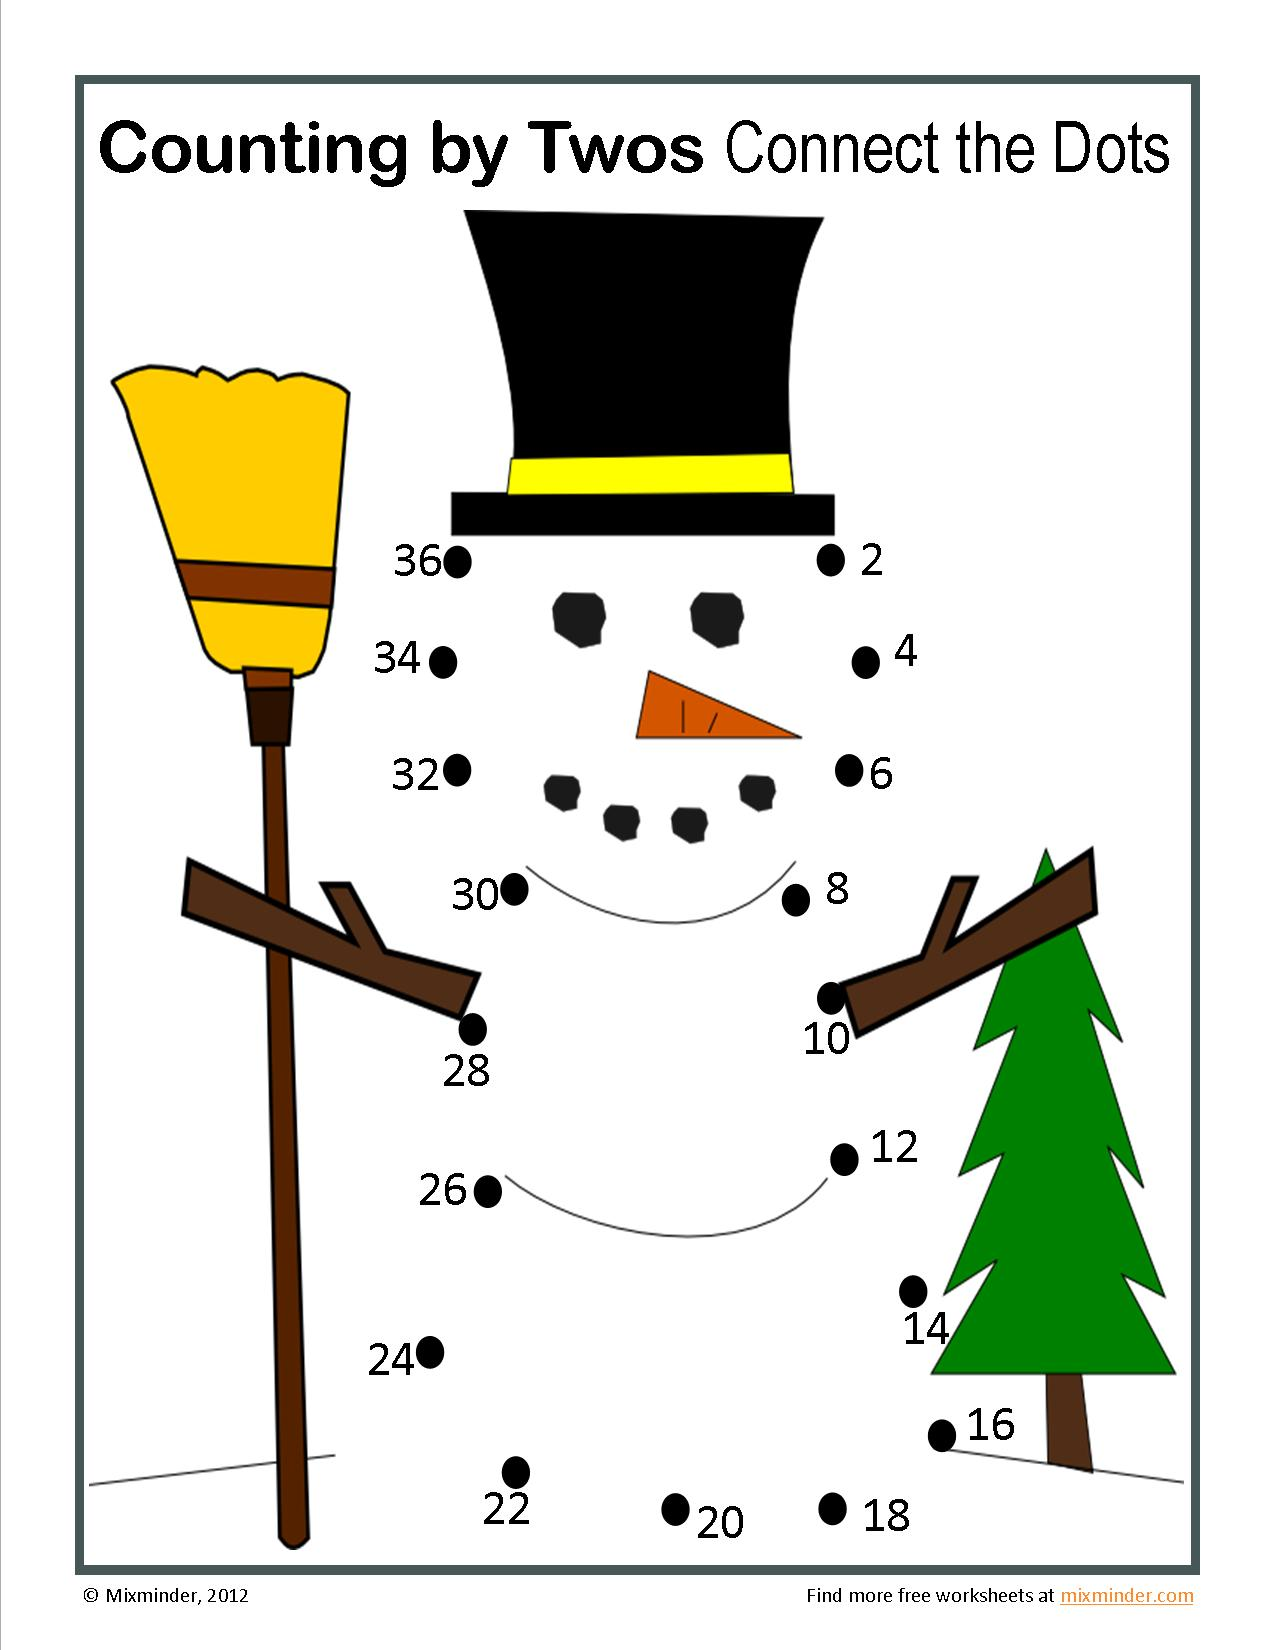 Winter Counting by Twos Connect the Dots